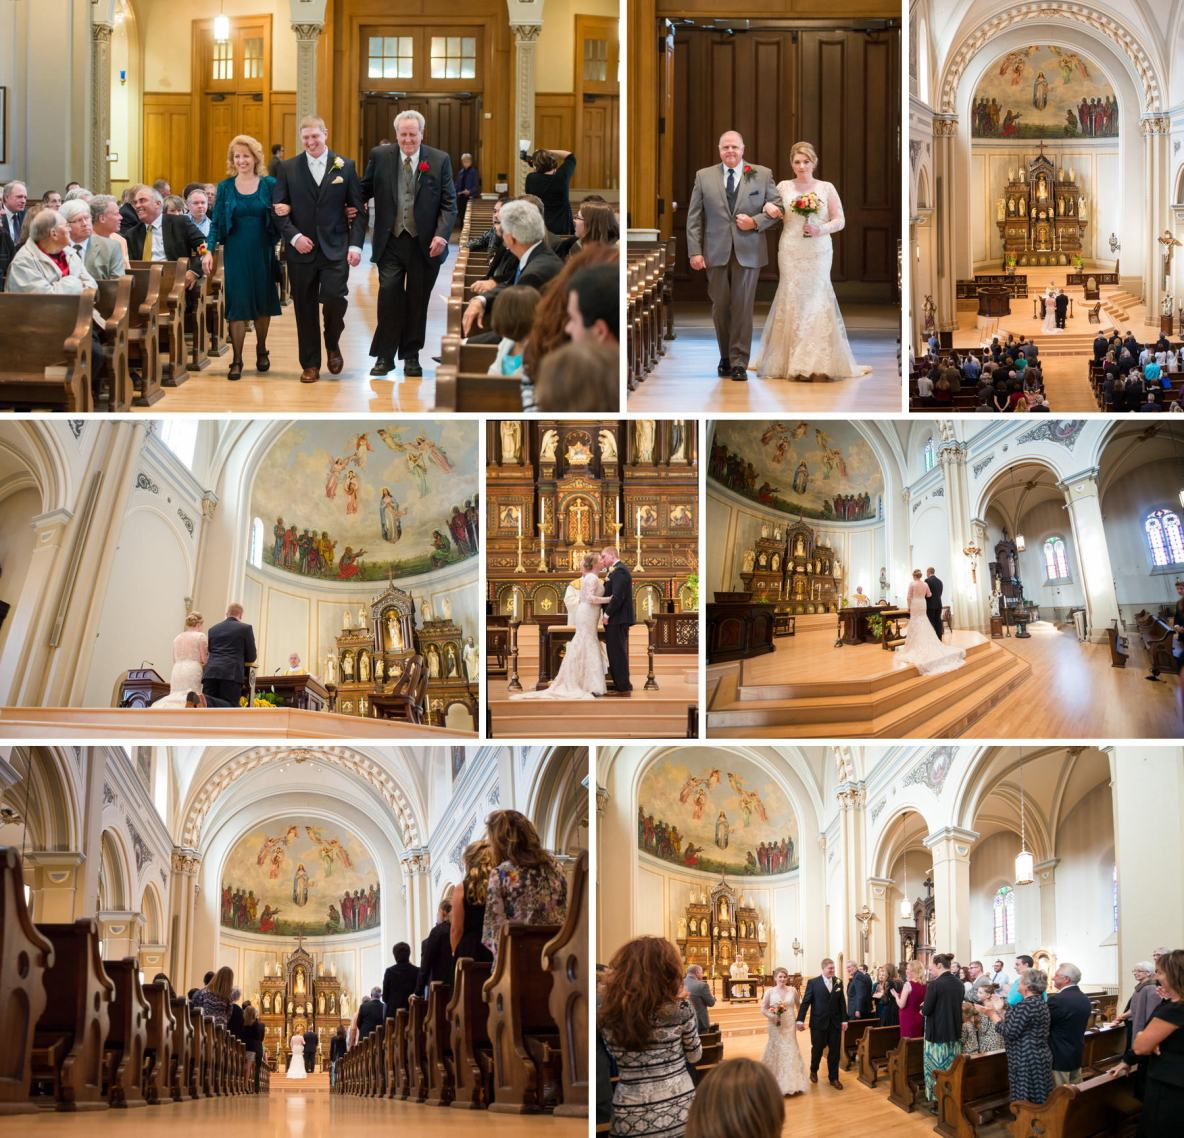 Catholic Wedding at Church of the Assumption in St. Paul MN.